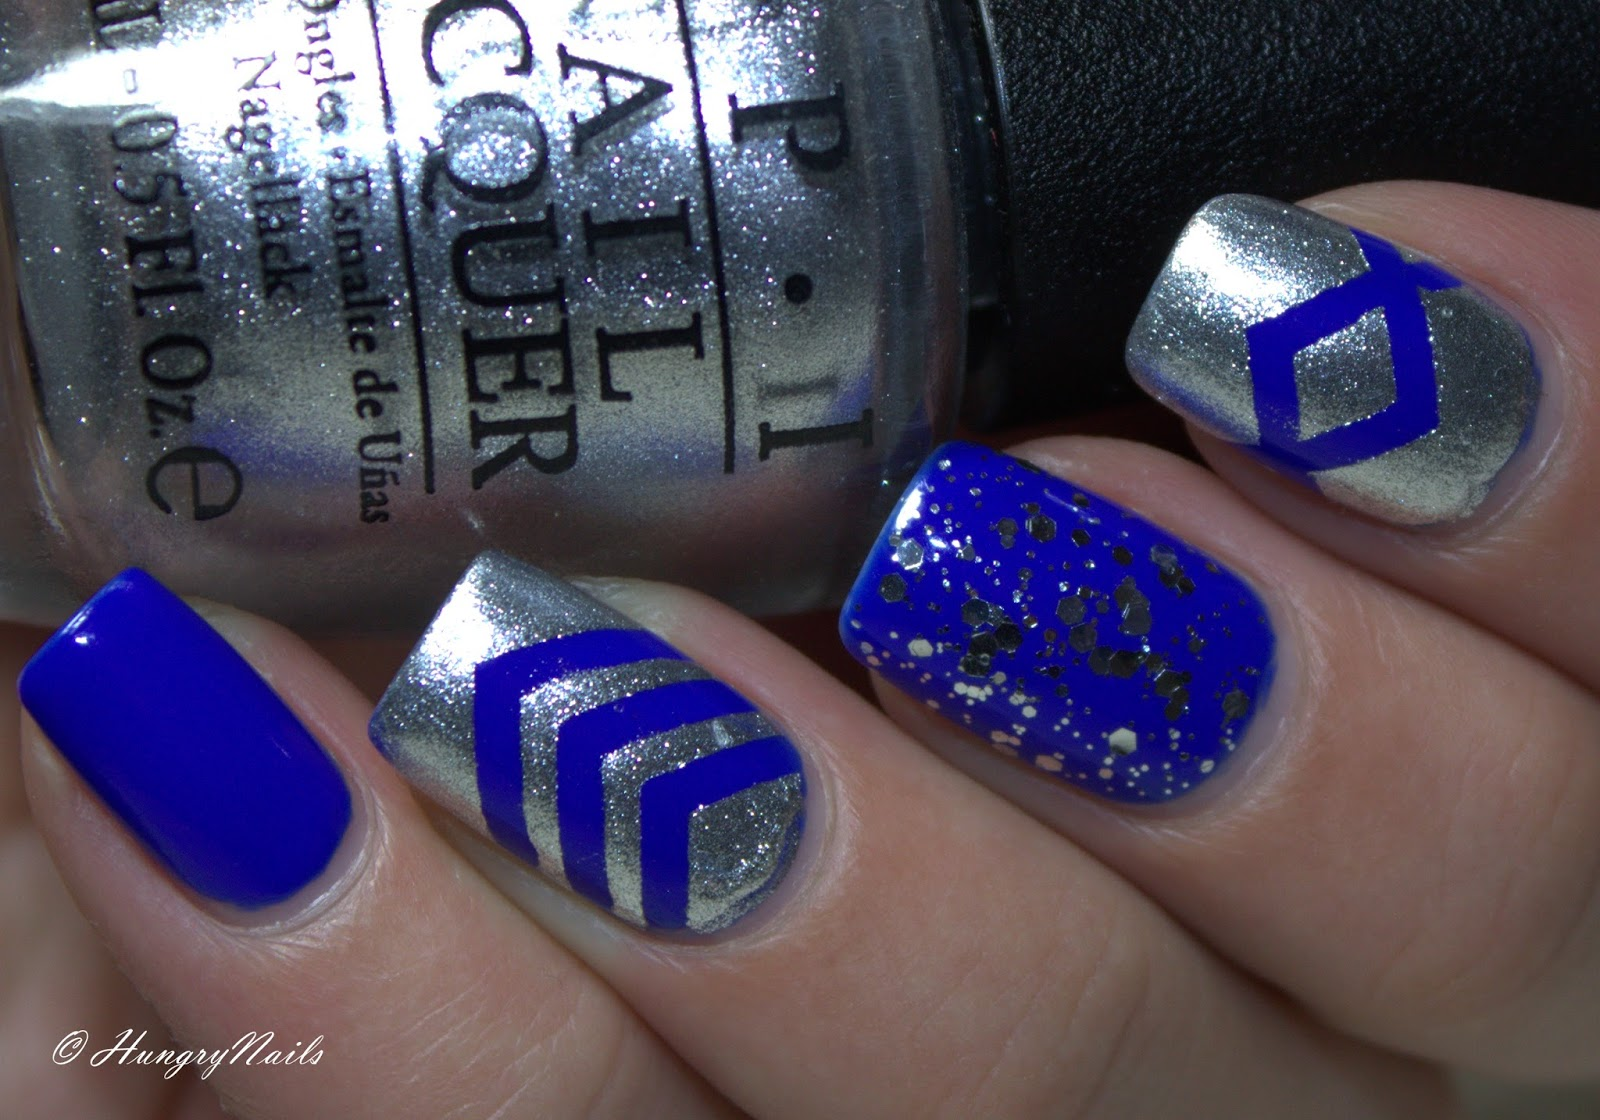 http://hungrynails.blogspot.de/2014/11/blue-friday-silberblaue-skittle-nails.html